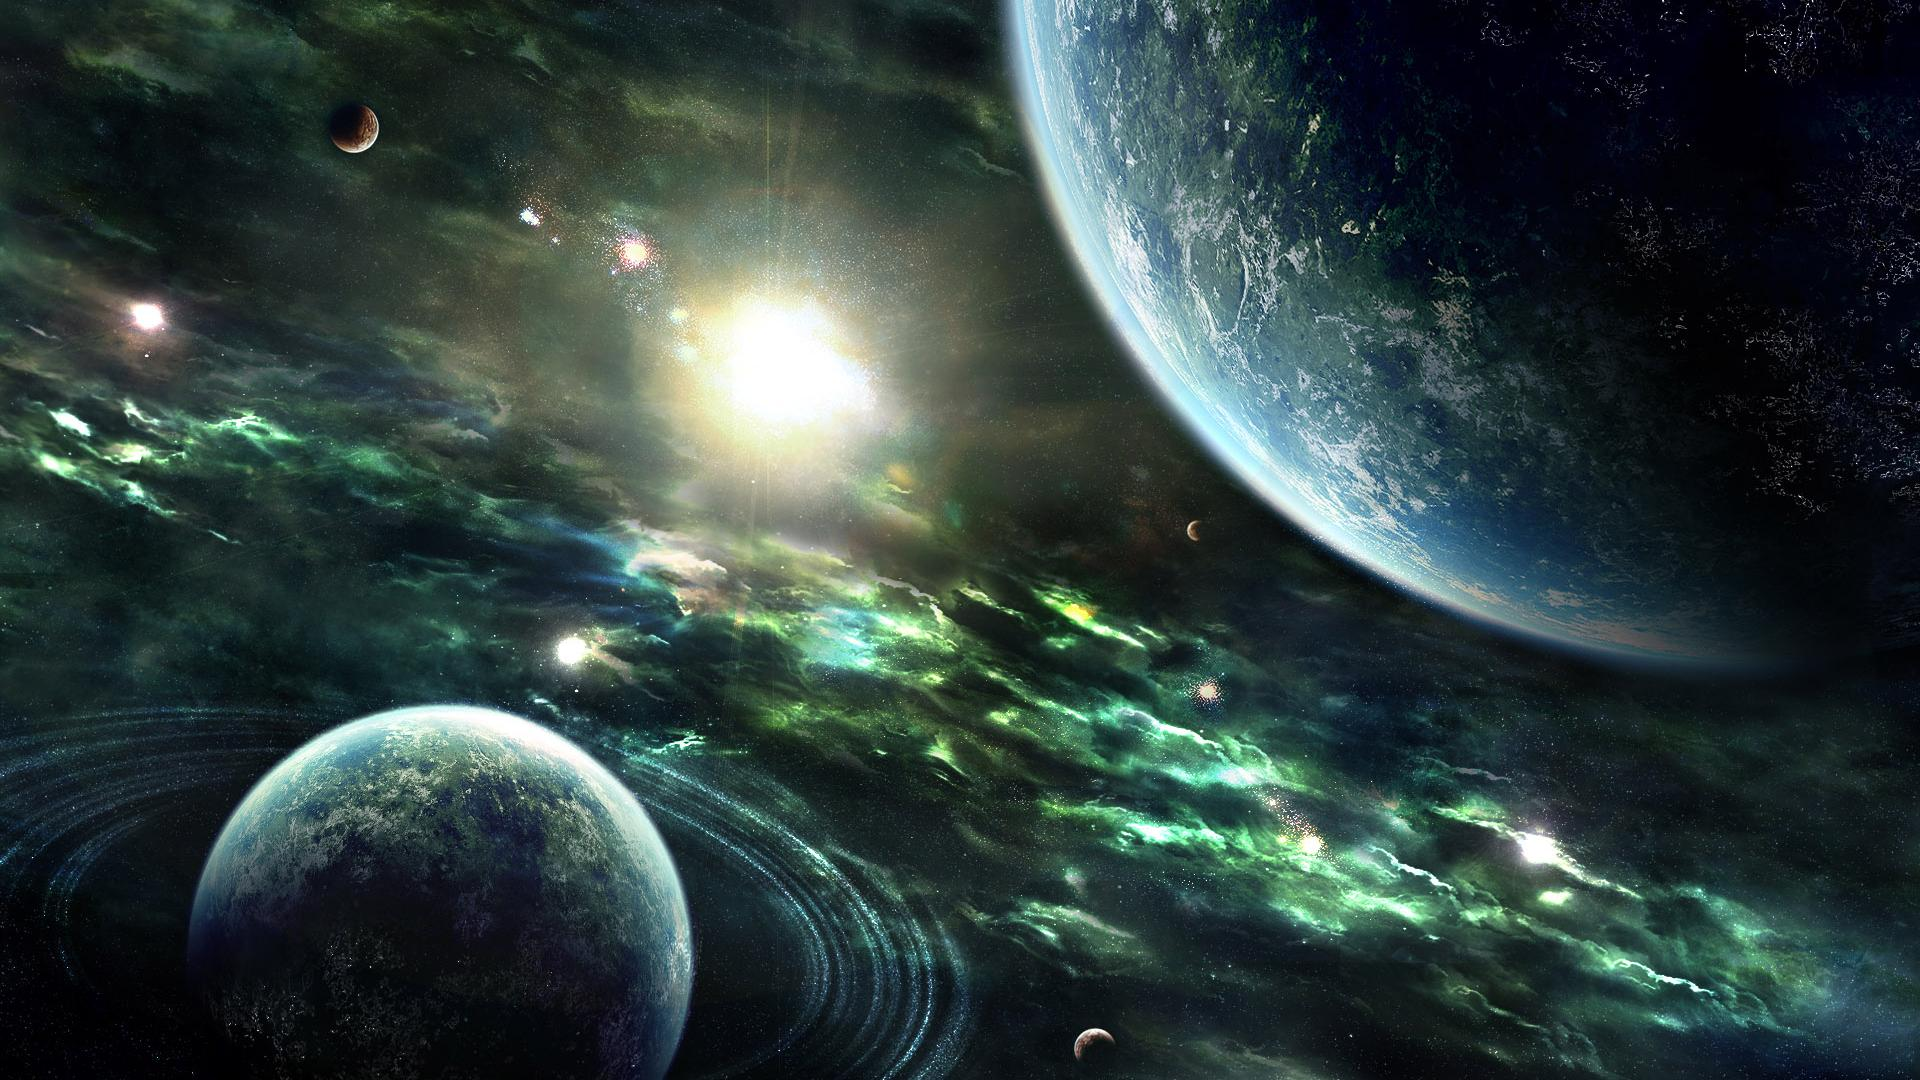 space wallpaper   Space Wallpaper 32897730 1920x1080